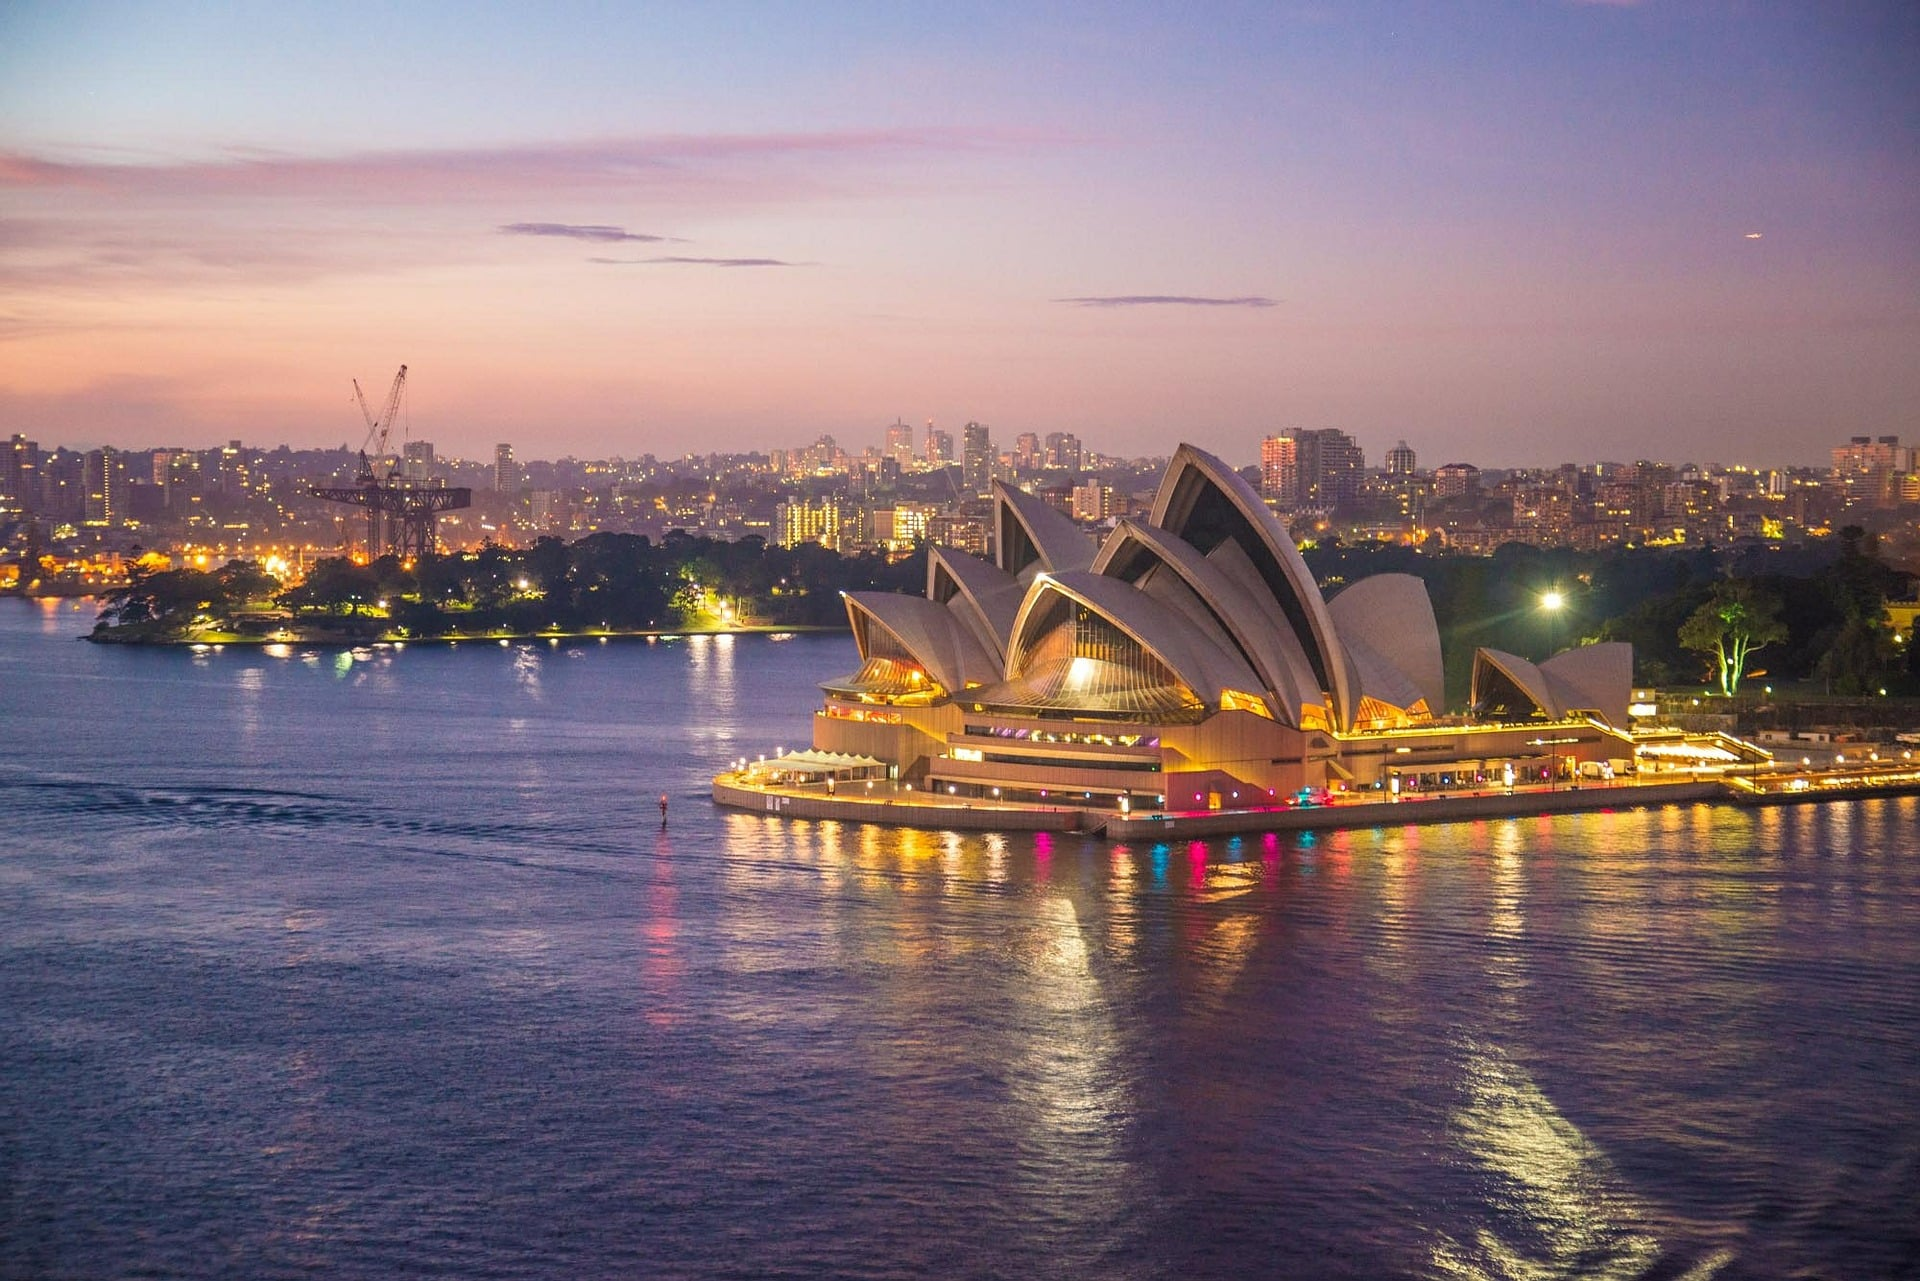 One day in Sydney - Top things to do in Sydney in one day